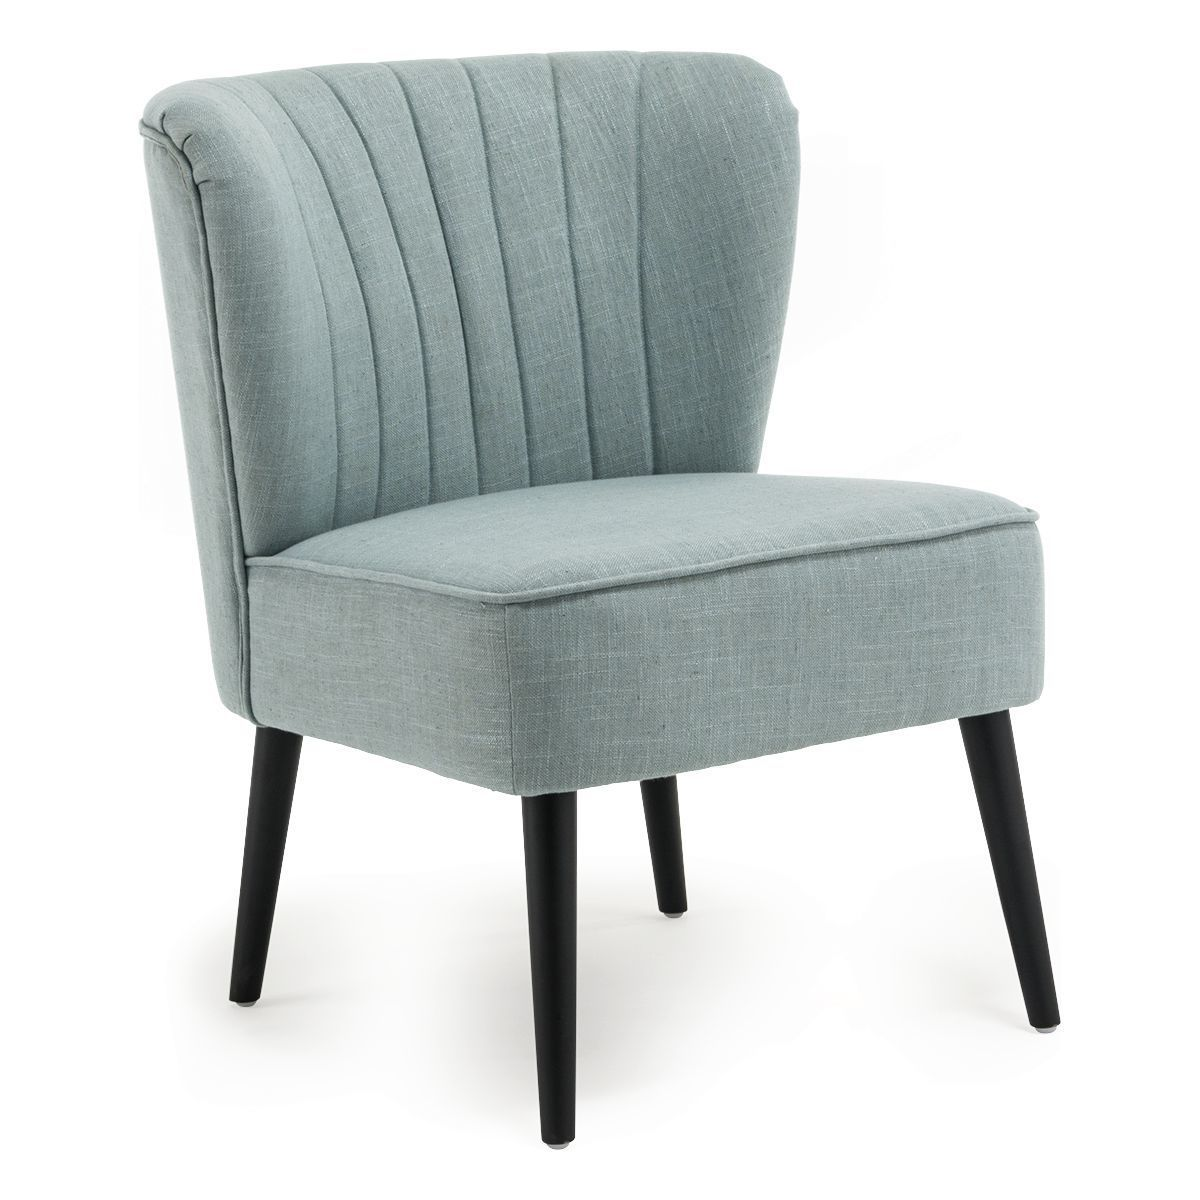 Sessel Retro Retro Sessel Aus Polyester Sessel Furniture Chair Accent Chairs